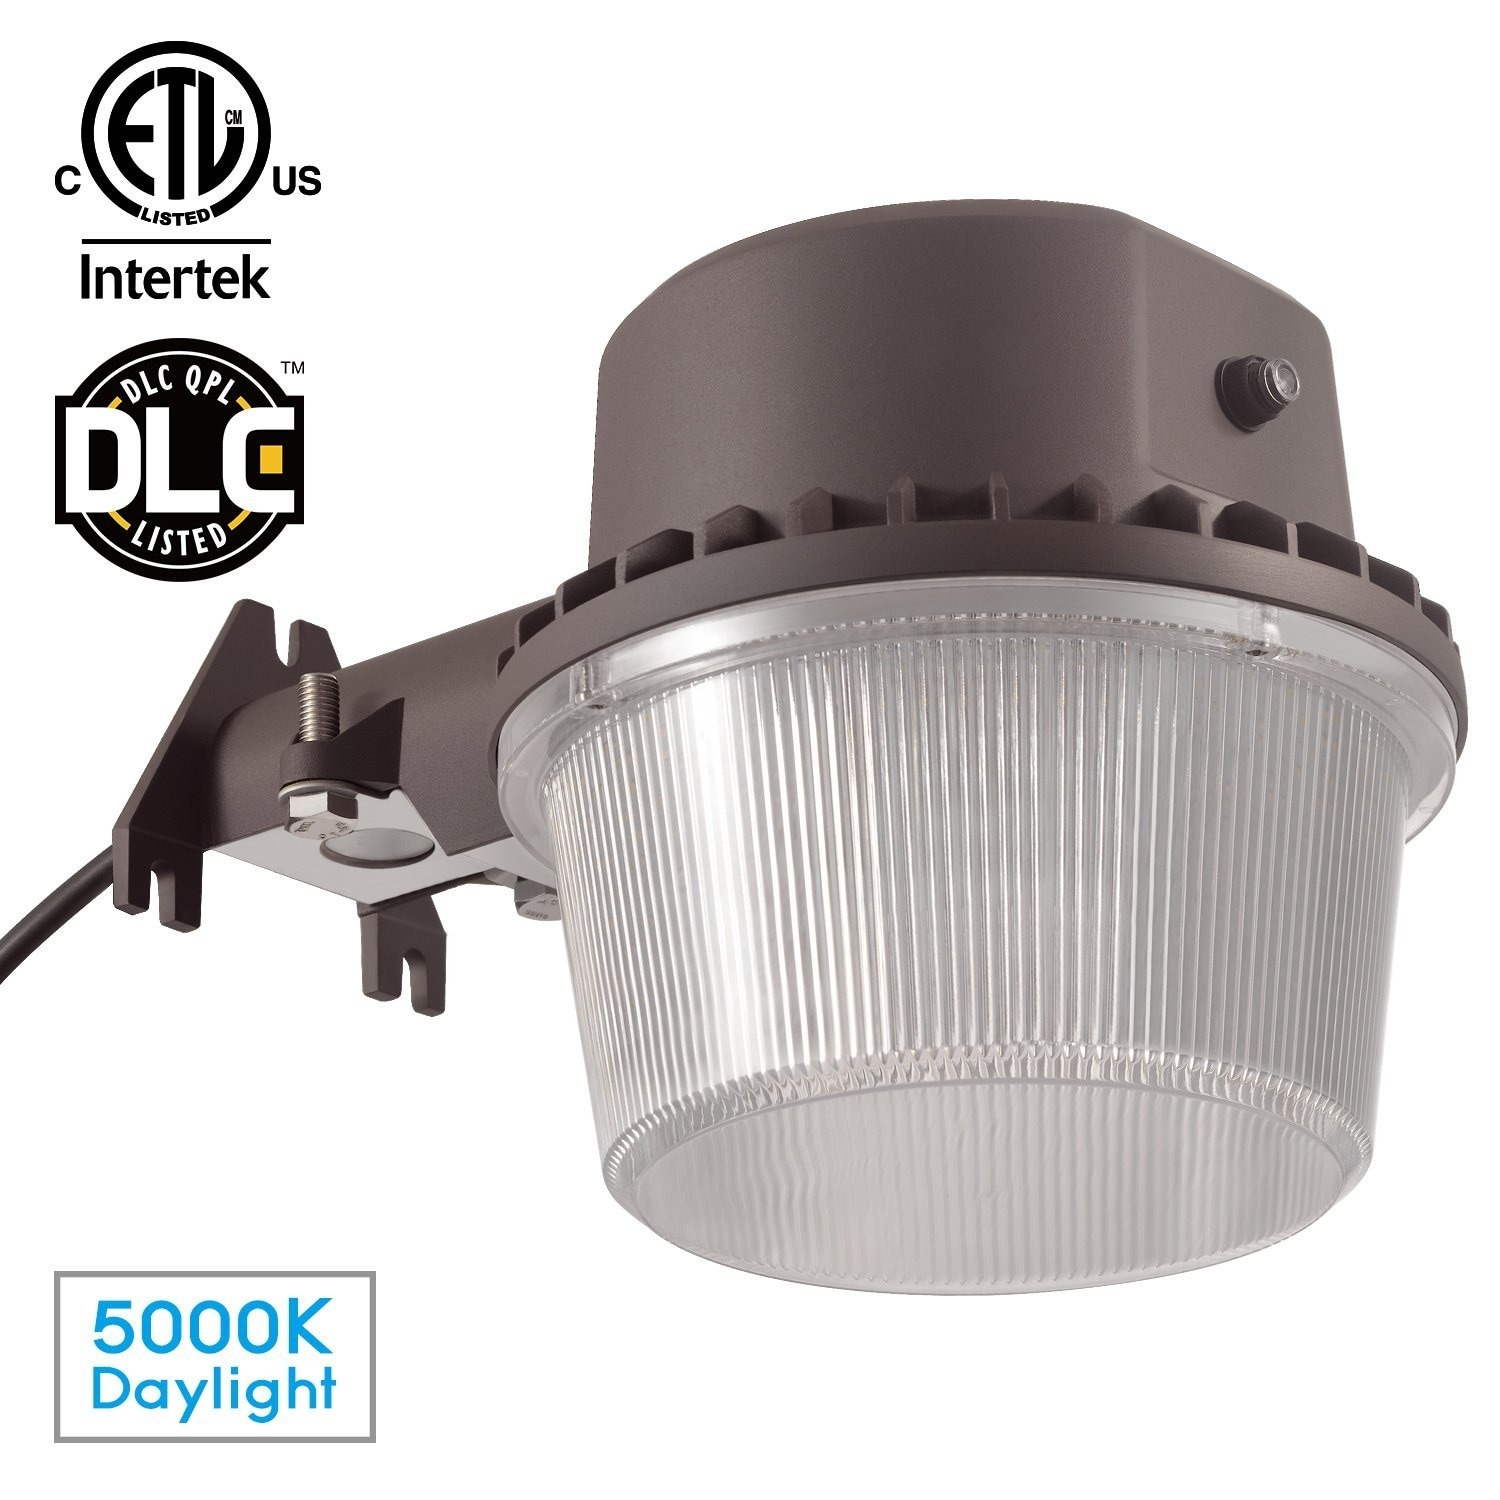 Exterior Security Lighting Basement Dusk to Dawn Barn Light LED Wall Pack Outdoor Light Photocell Included Garage Ultra Bright DLC /& ETL Certified 25W 250W Equiv Garden 2 Pack LEONLITE LHDLCWP-2P25W50 Yard